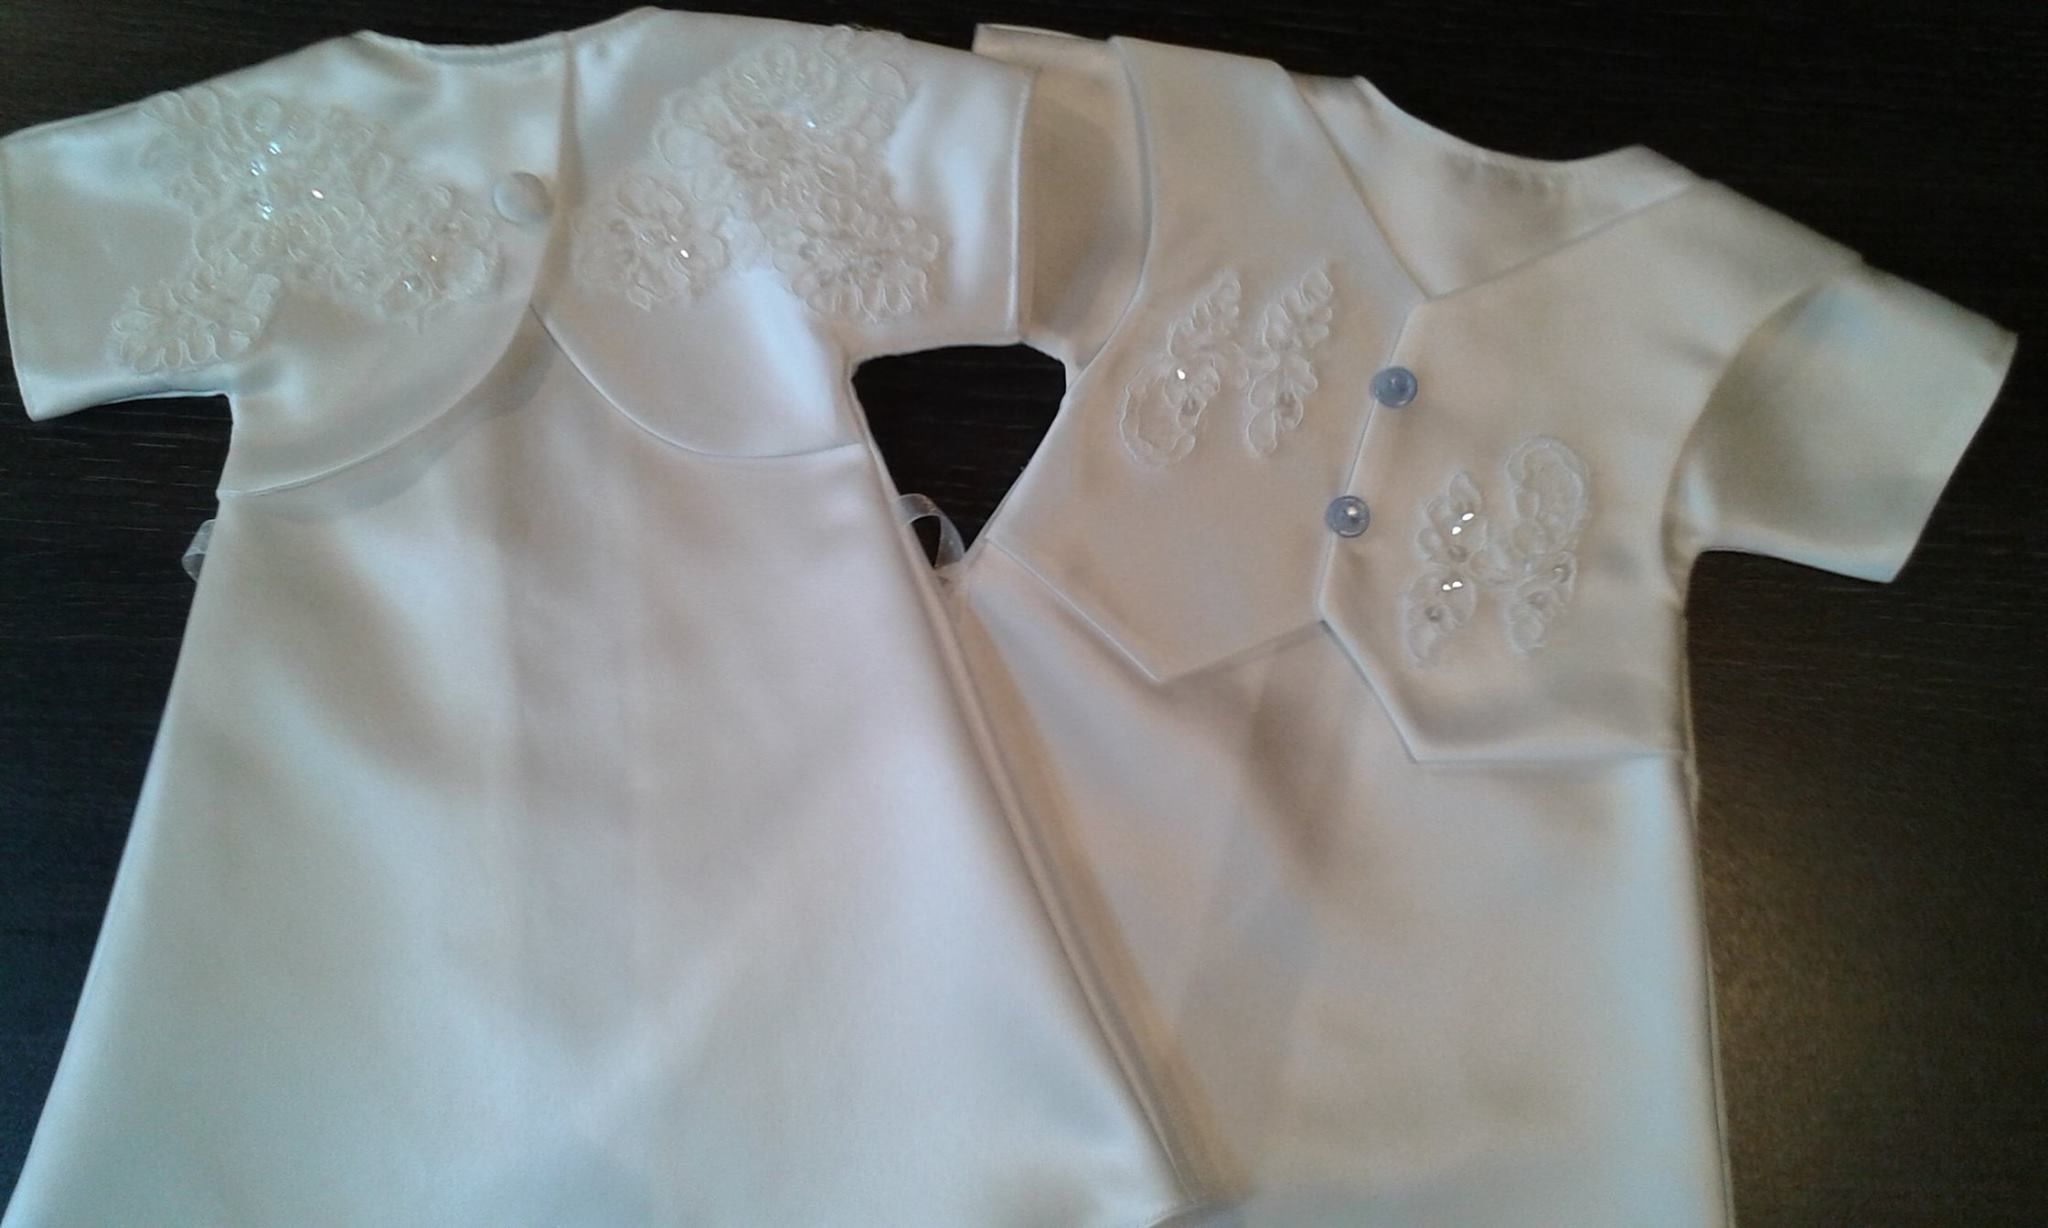 Cherished Gowns UK  - Volunteer Makes Cherished Gowns UK March 2017